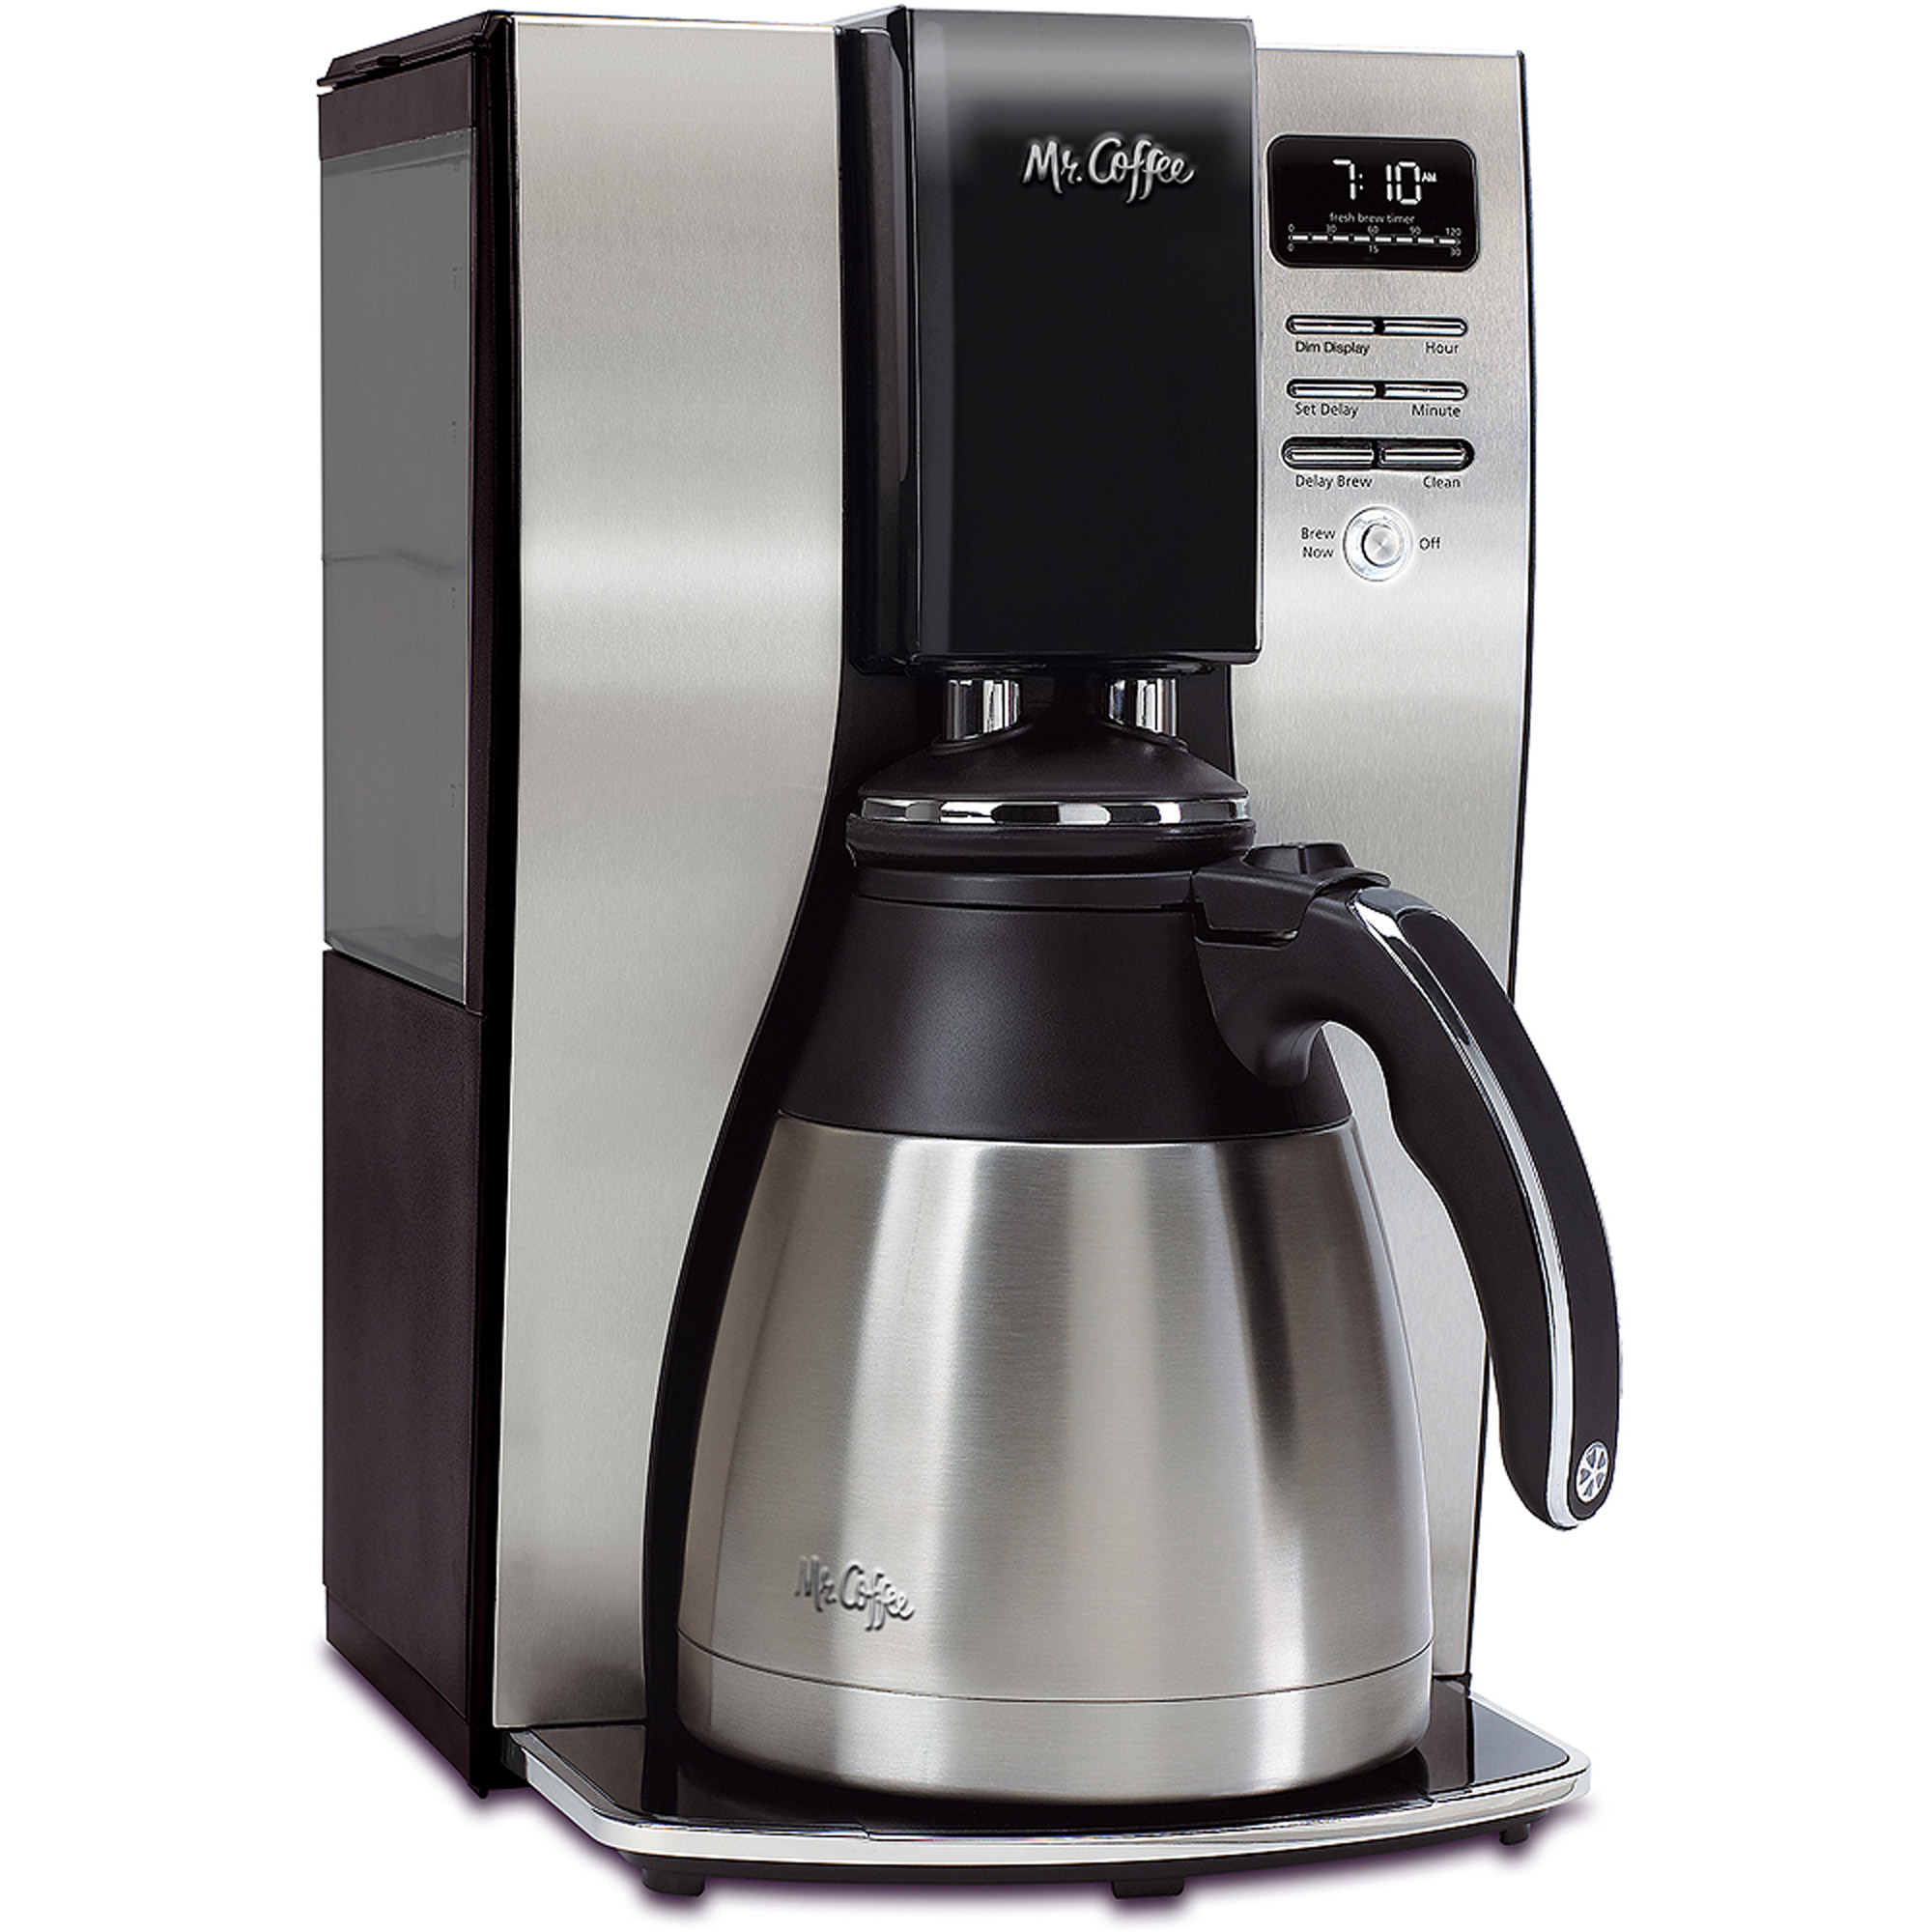 Mr. Coffee 10-Cup OptimalBrew Thermal Coffee Maker, BVMC-PSTX91-WM